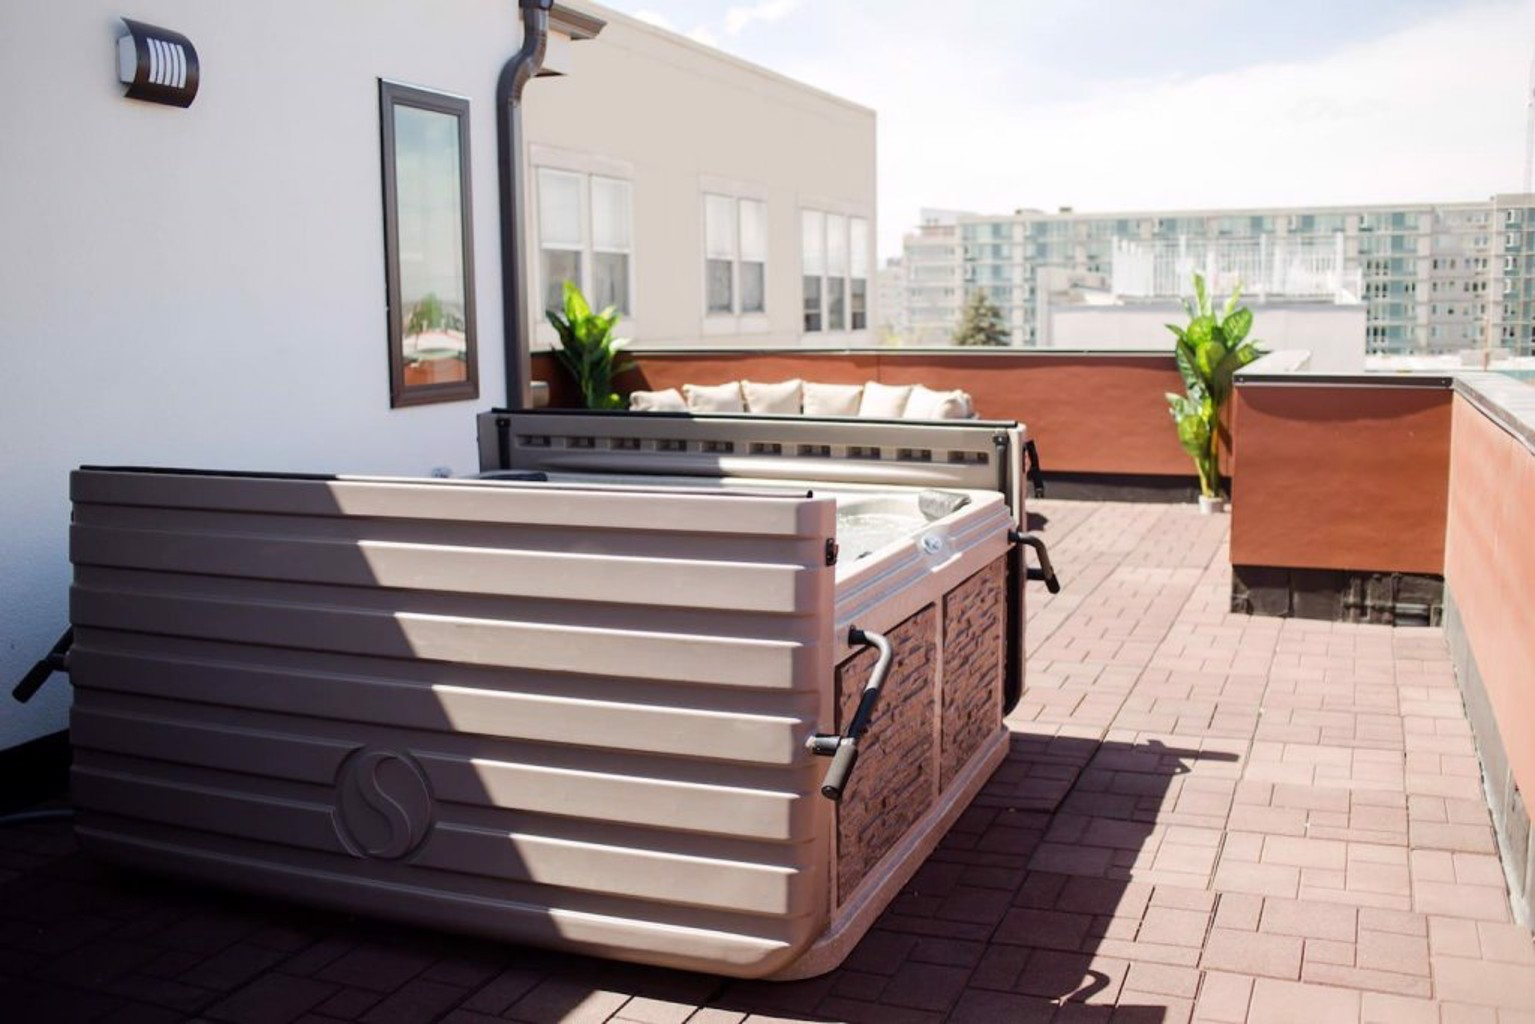 NEW Luxurious Vacation Home in DT Denver 2